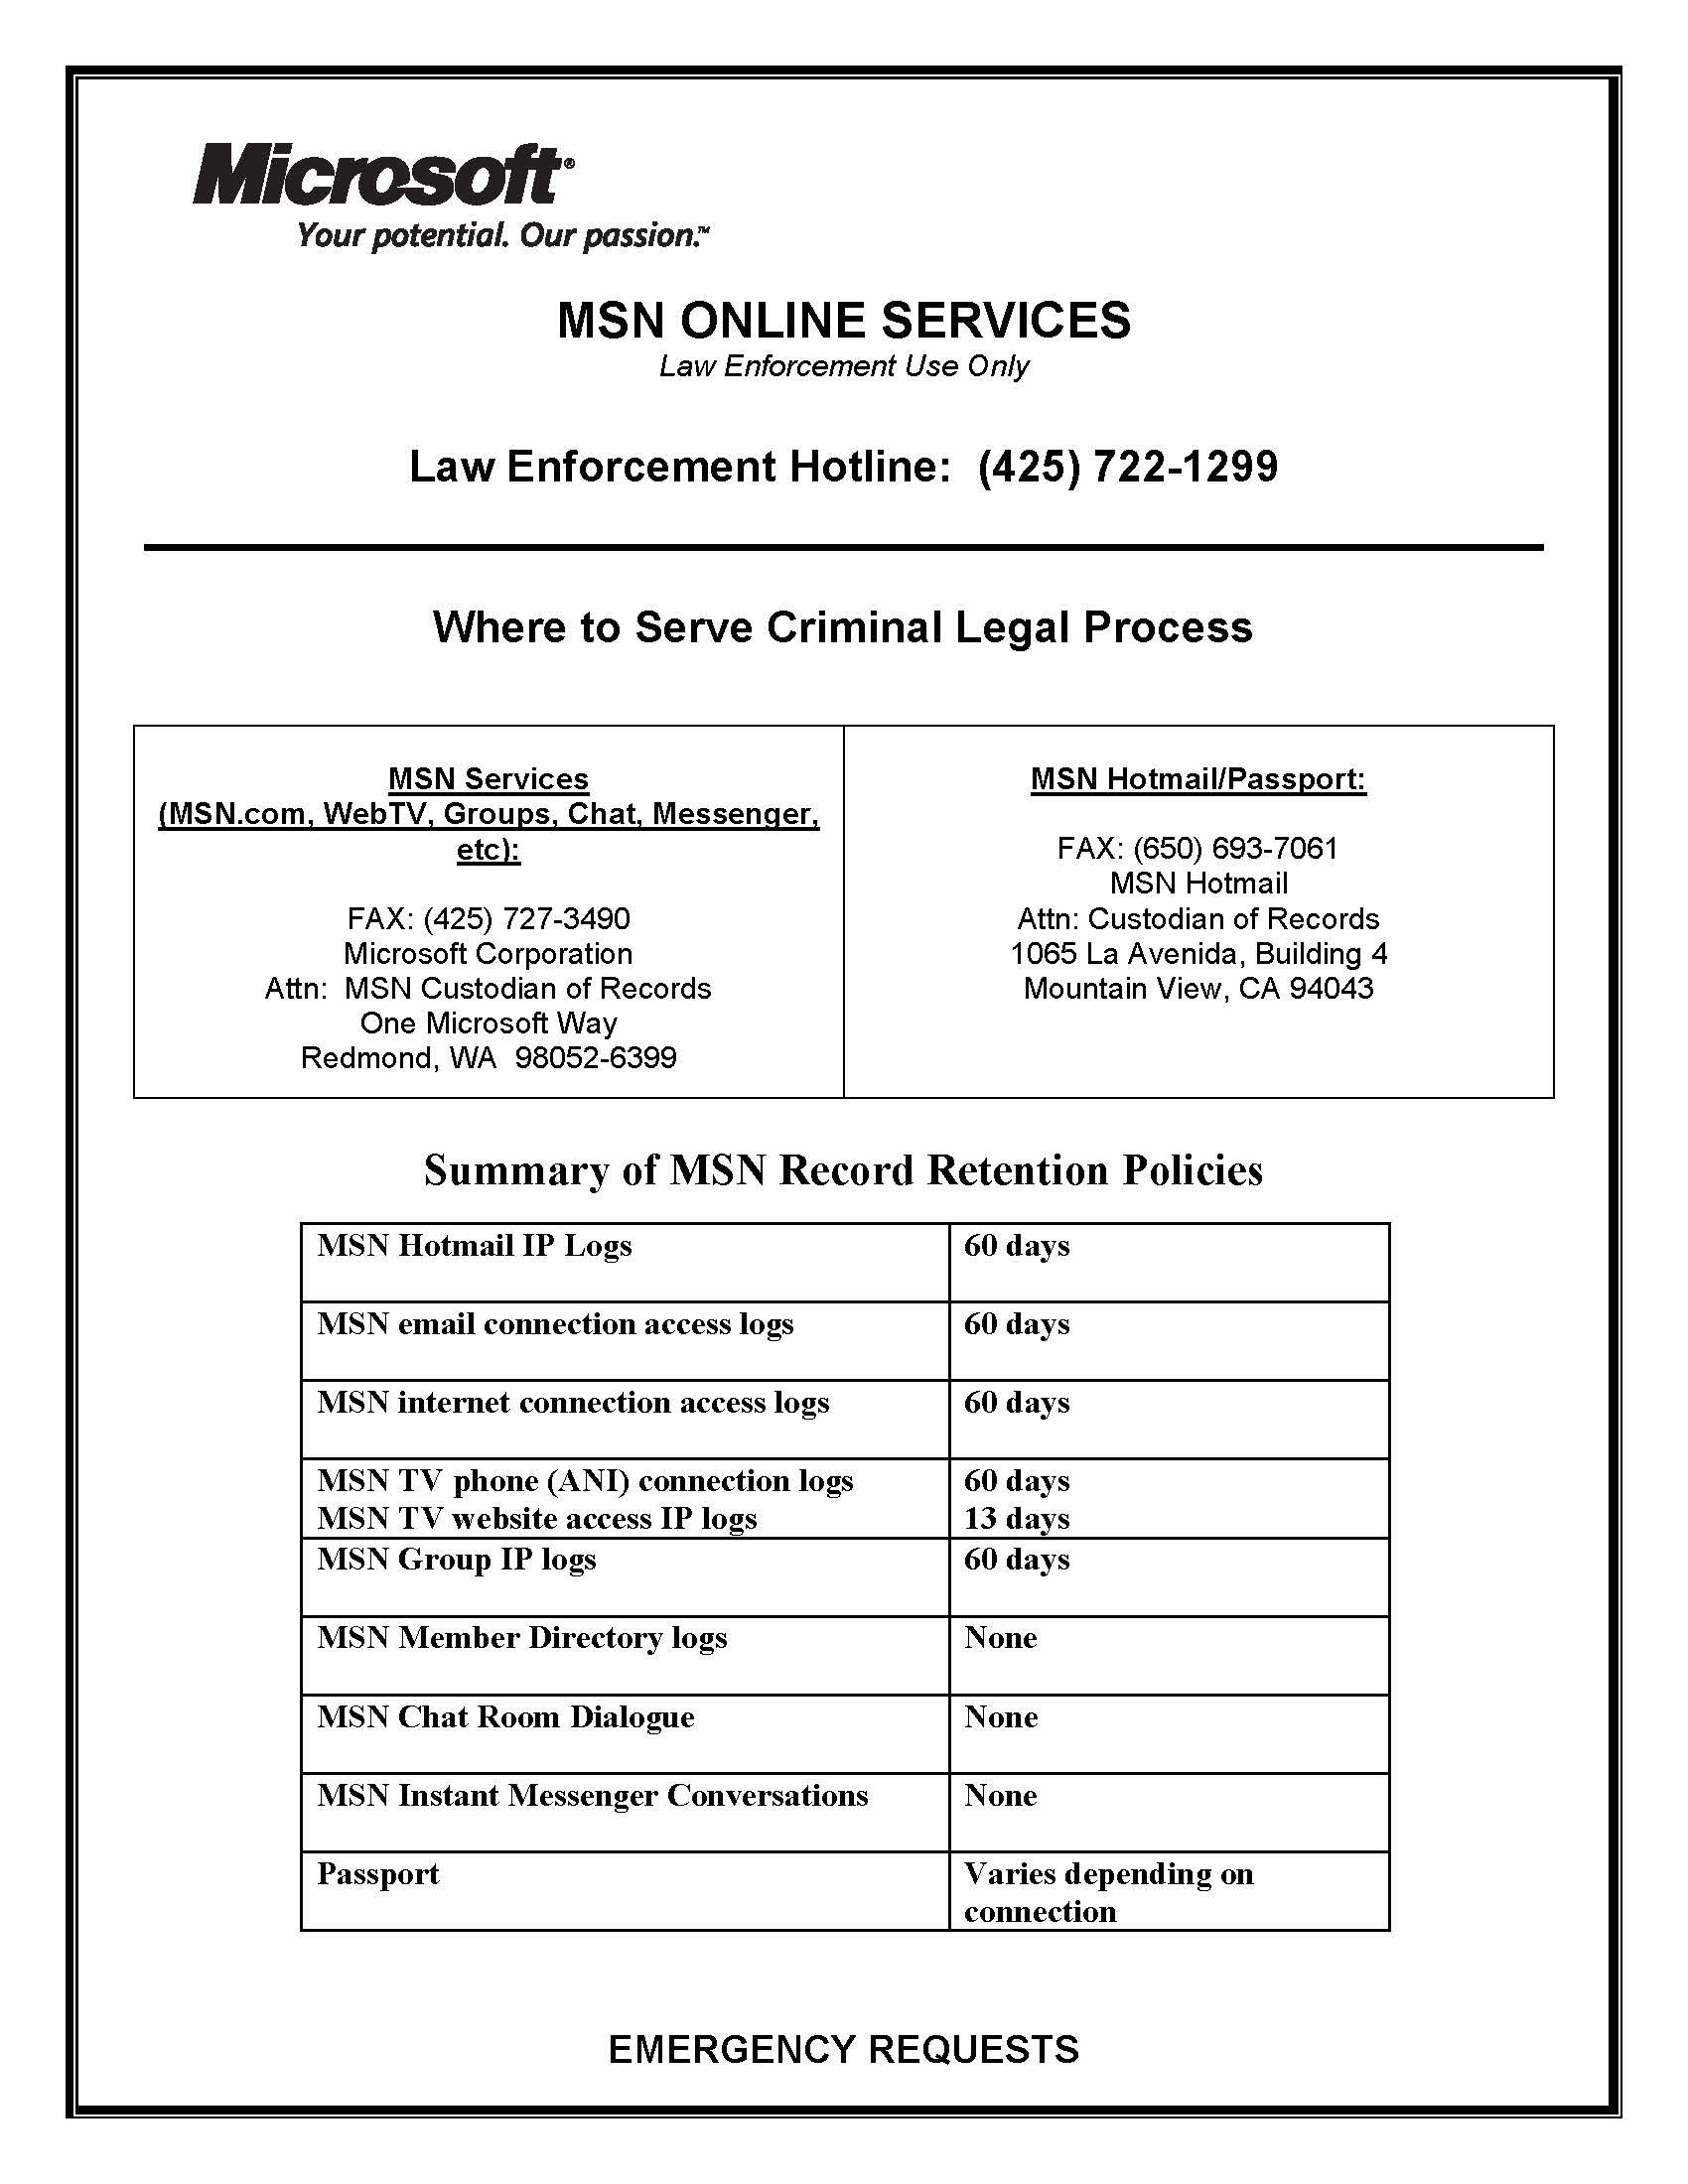 Microsoft MSN Online Services Subpoena/Legal Compliance Guide